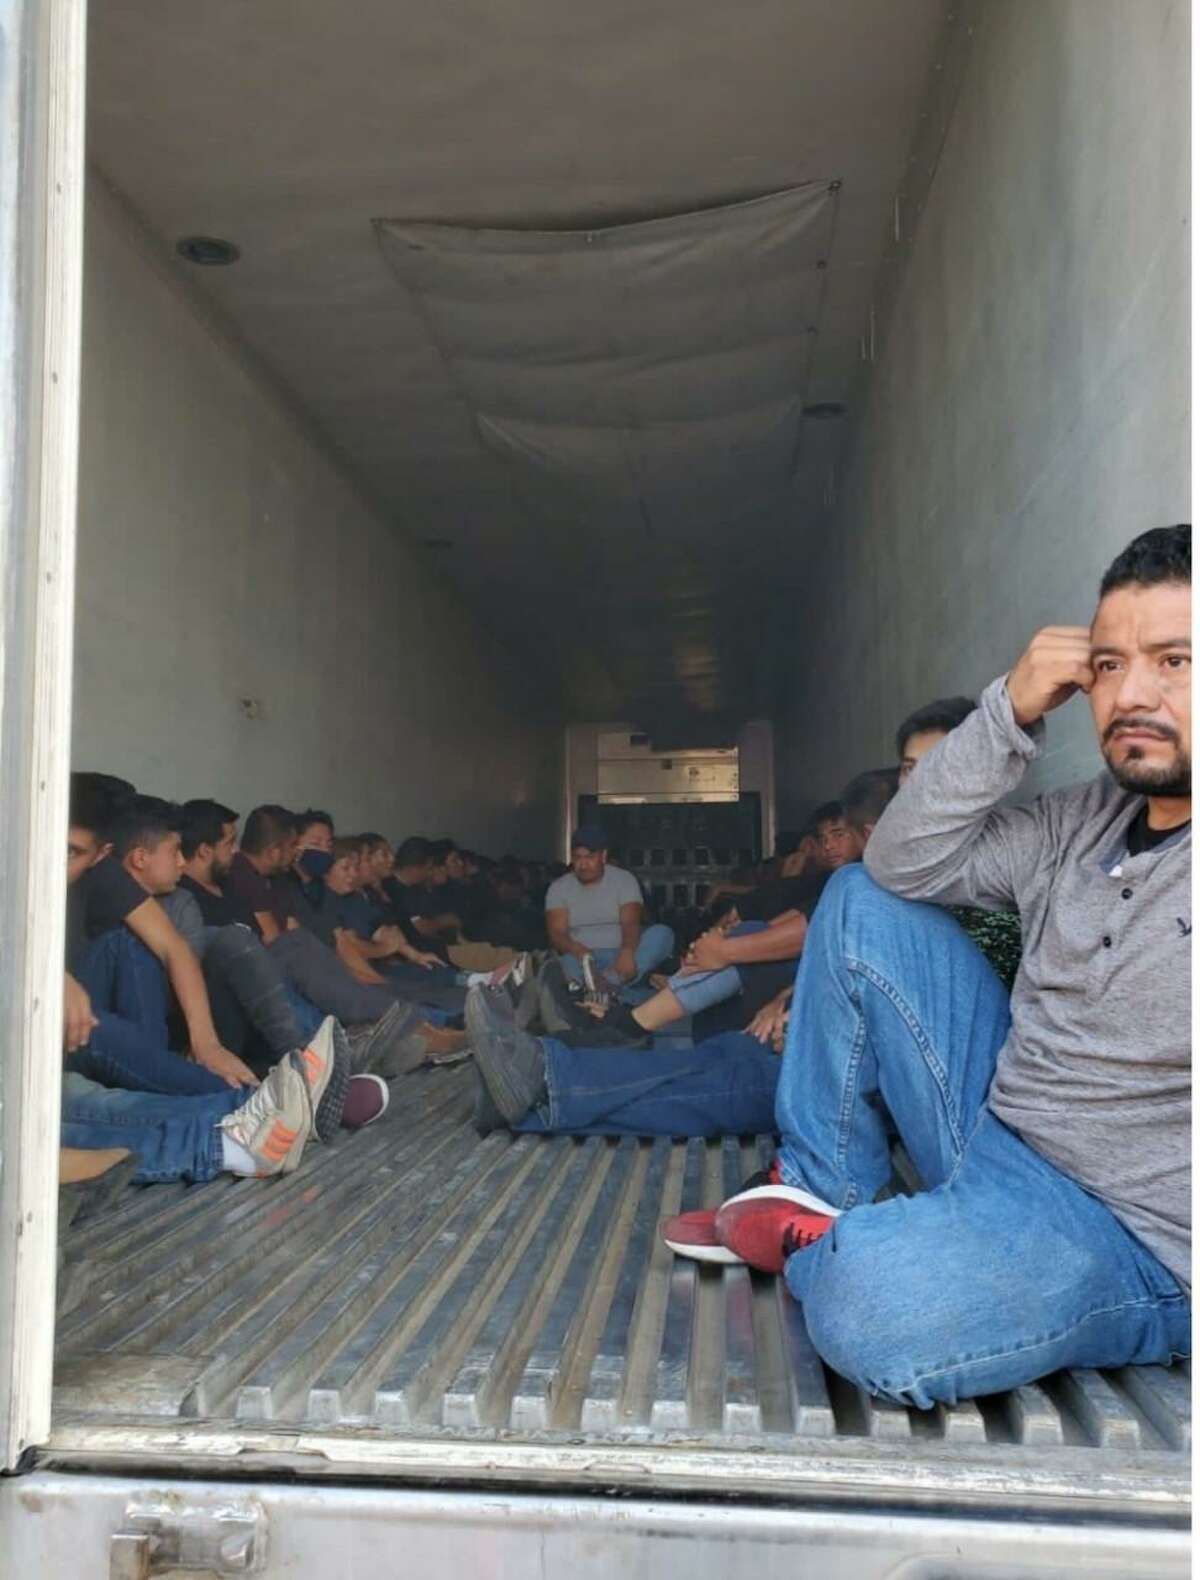 Laredo police officers said they discovered these 63 immigrants inside a trailer. The 18-wheeler was discovered behind Burlington Coat Factory on San Bernardo Avenue.